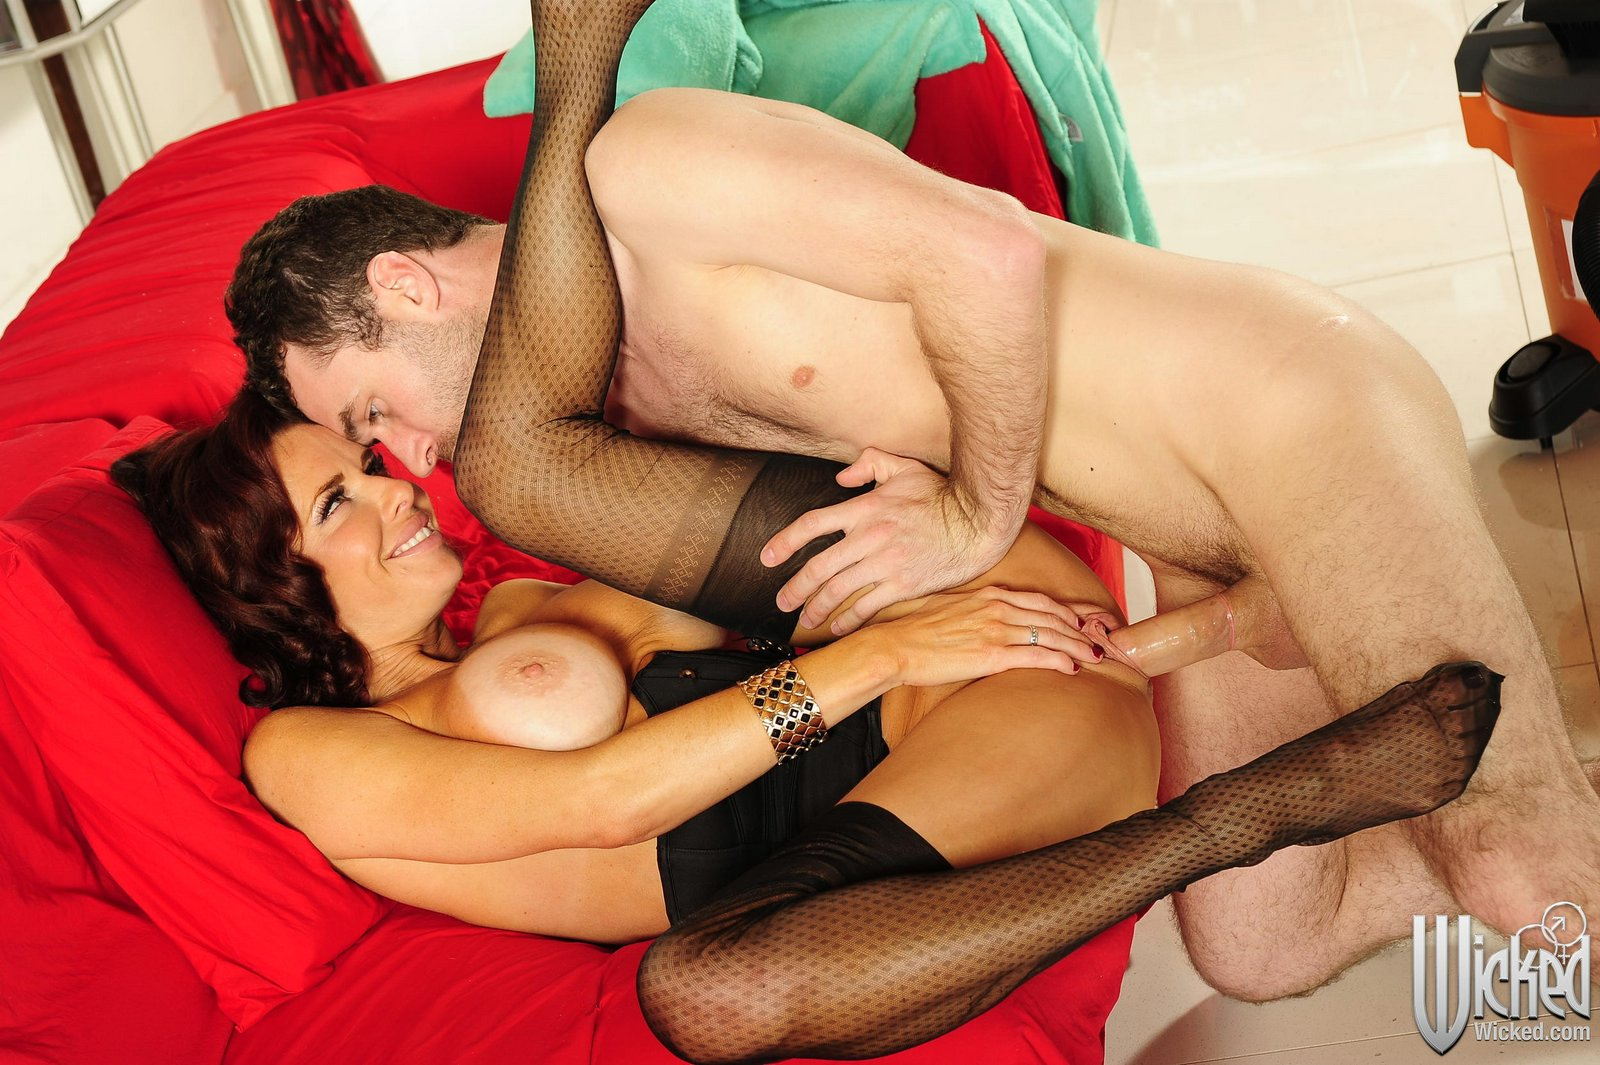 Bigboobed model Veronica Avluv strips down fucks